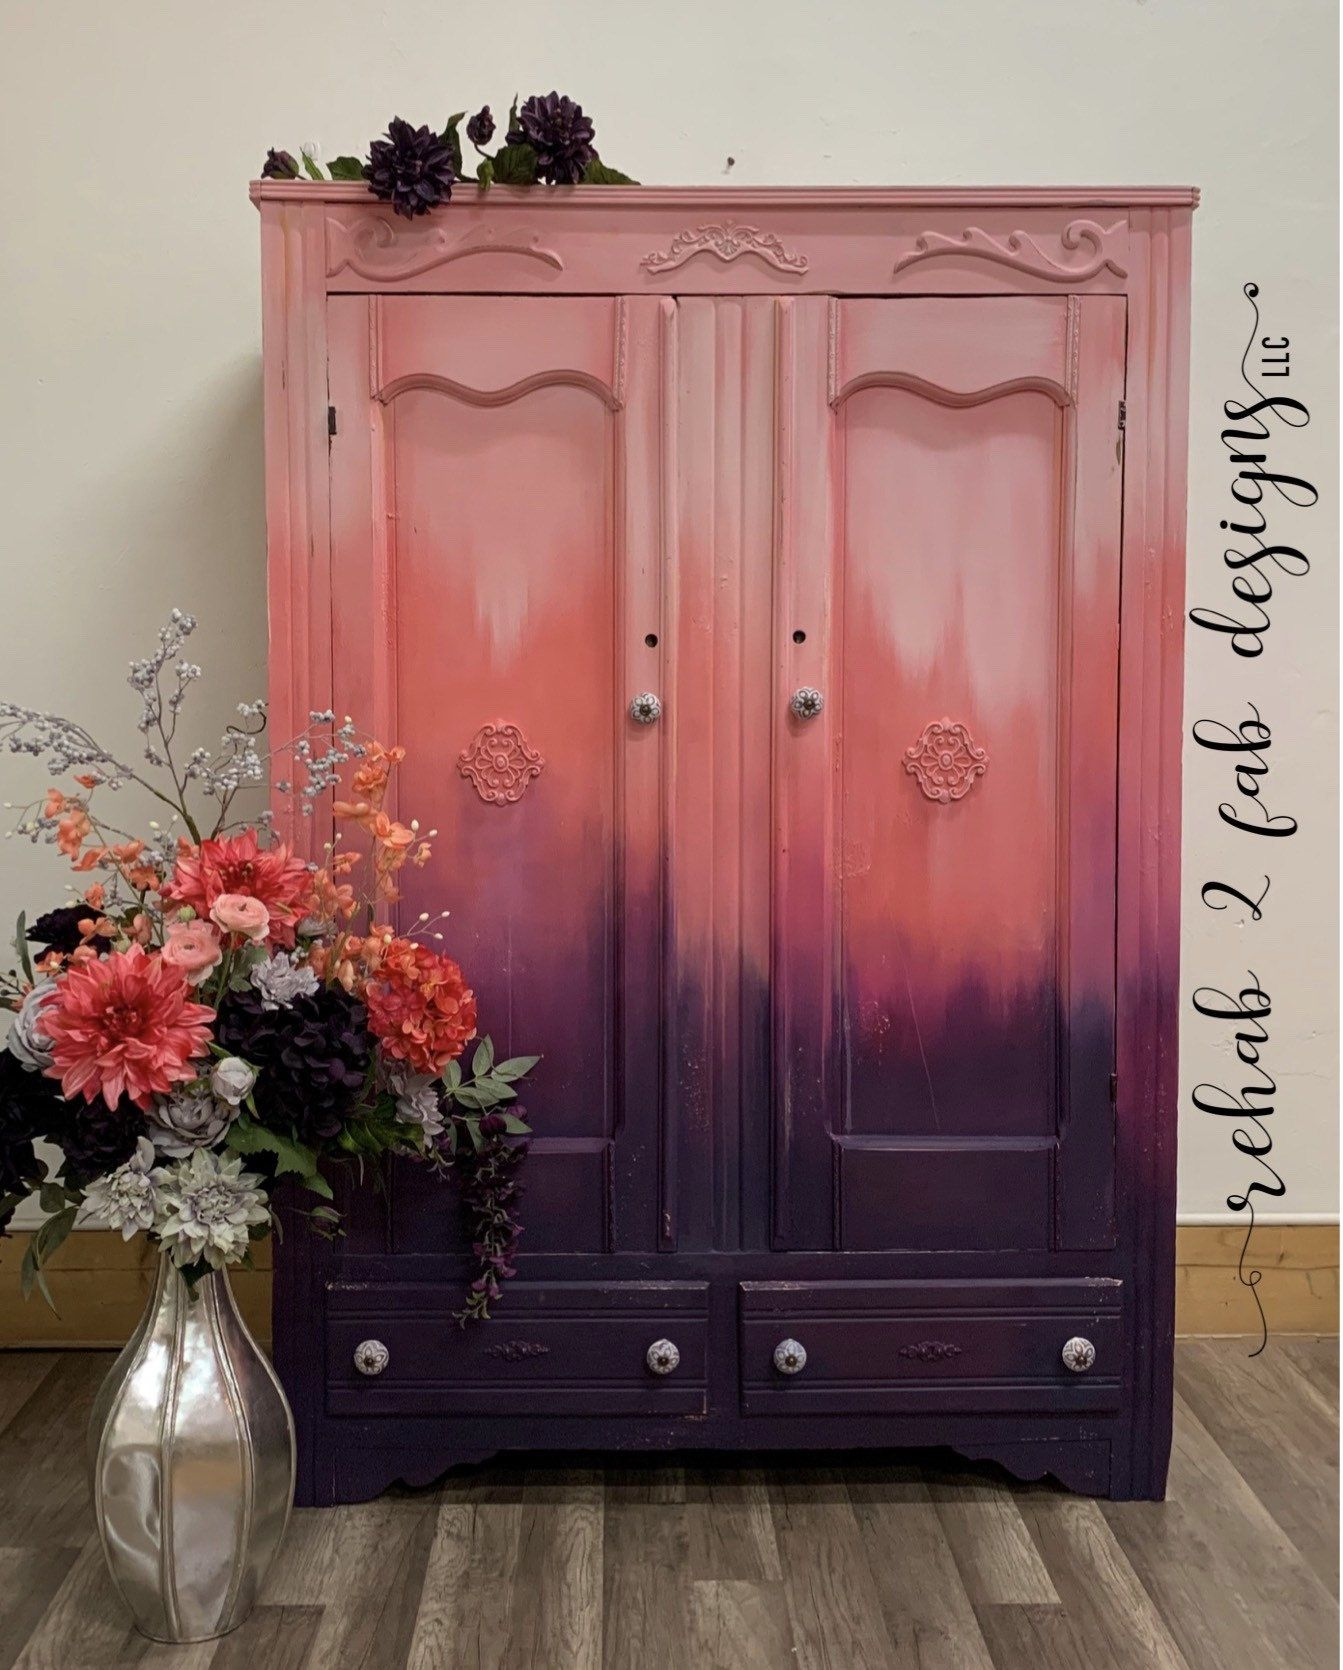 Antique Painted Oak Armoire Etsy In 2020 Antique Paint Complimentary Colors Hand Painted Furniture